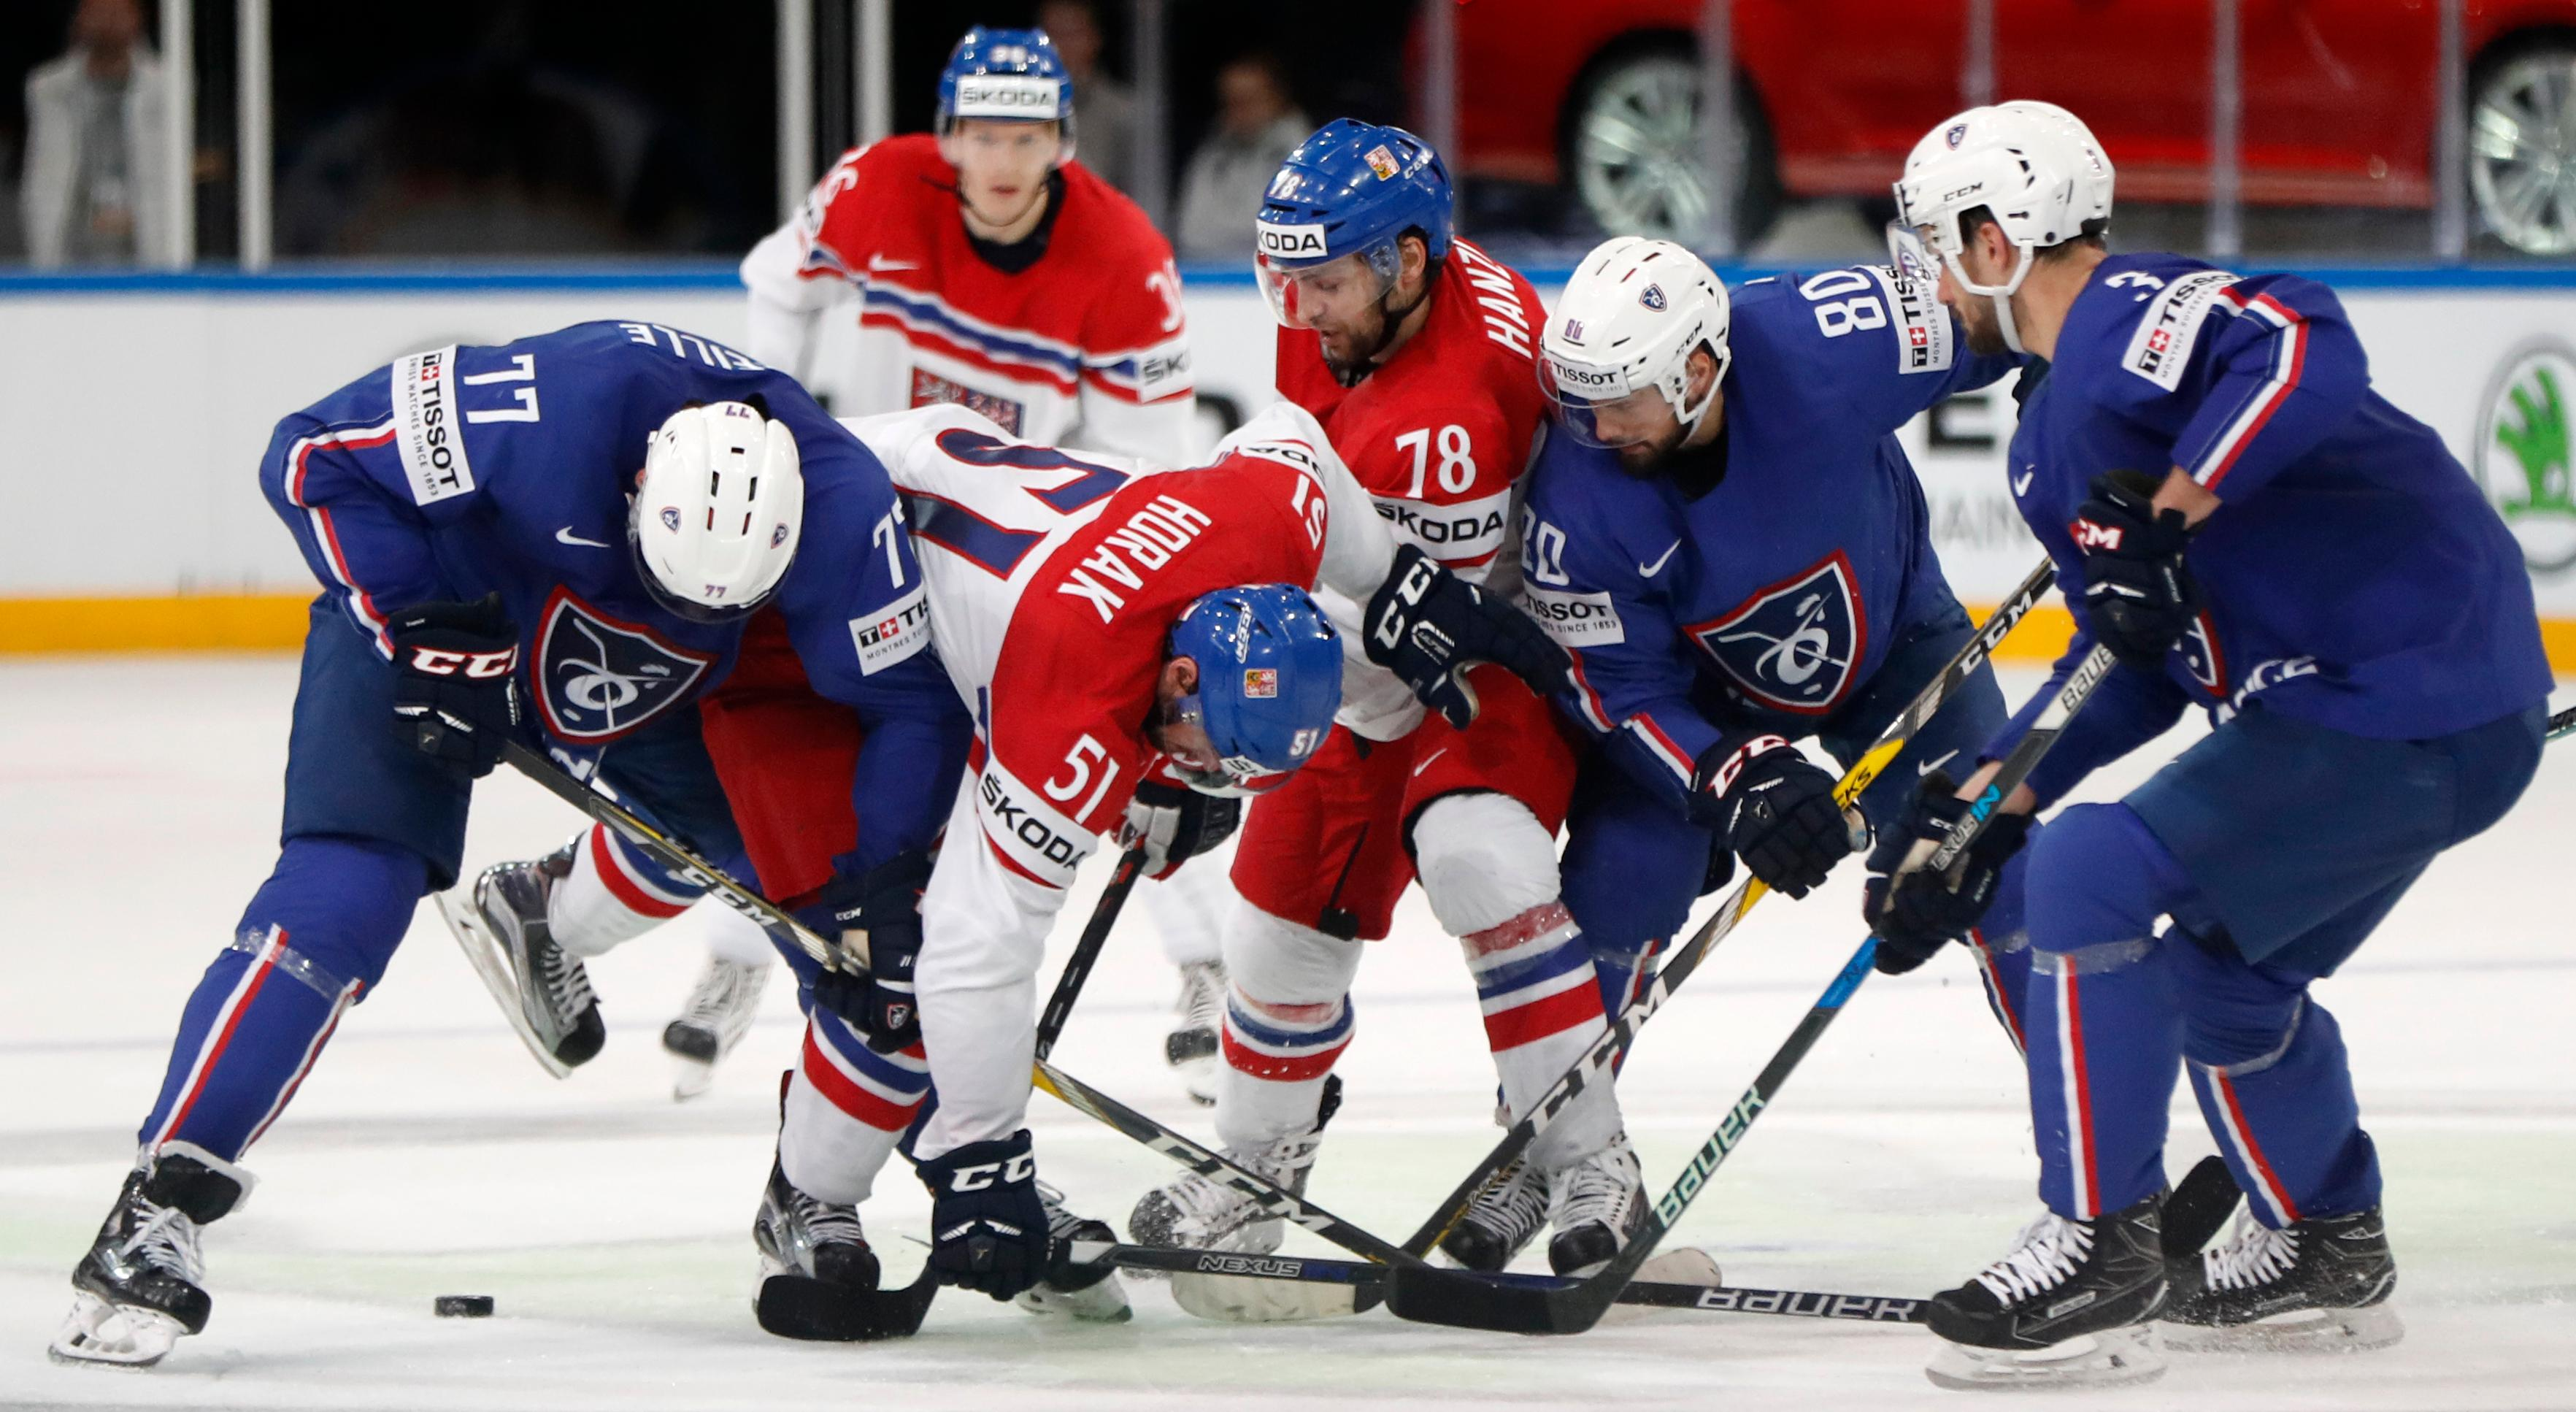 Players scuffle for the puck during the Ice Hockey World Championships group B match between France and Czech Republic in the AccorHotels Arena in Paris, France, Sunday, May 14, 2017. (AP Photo/Petr David Josek)